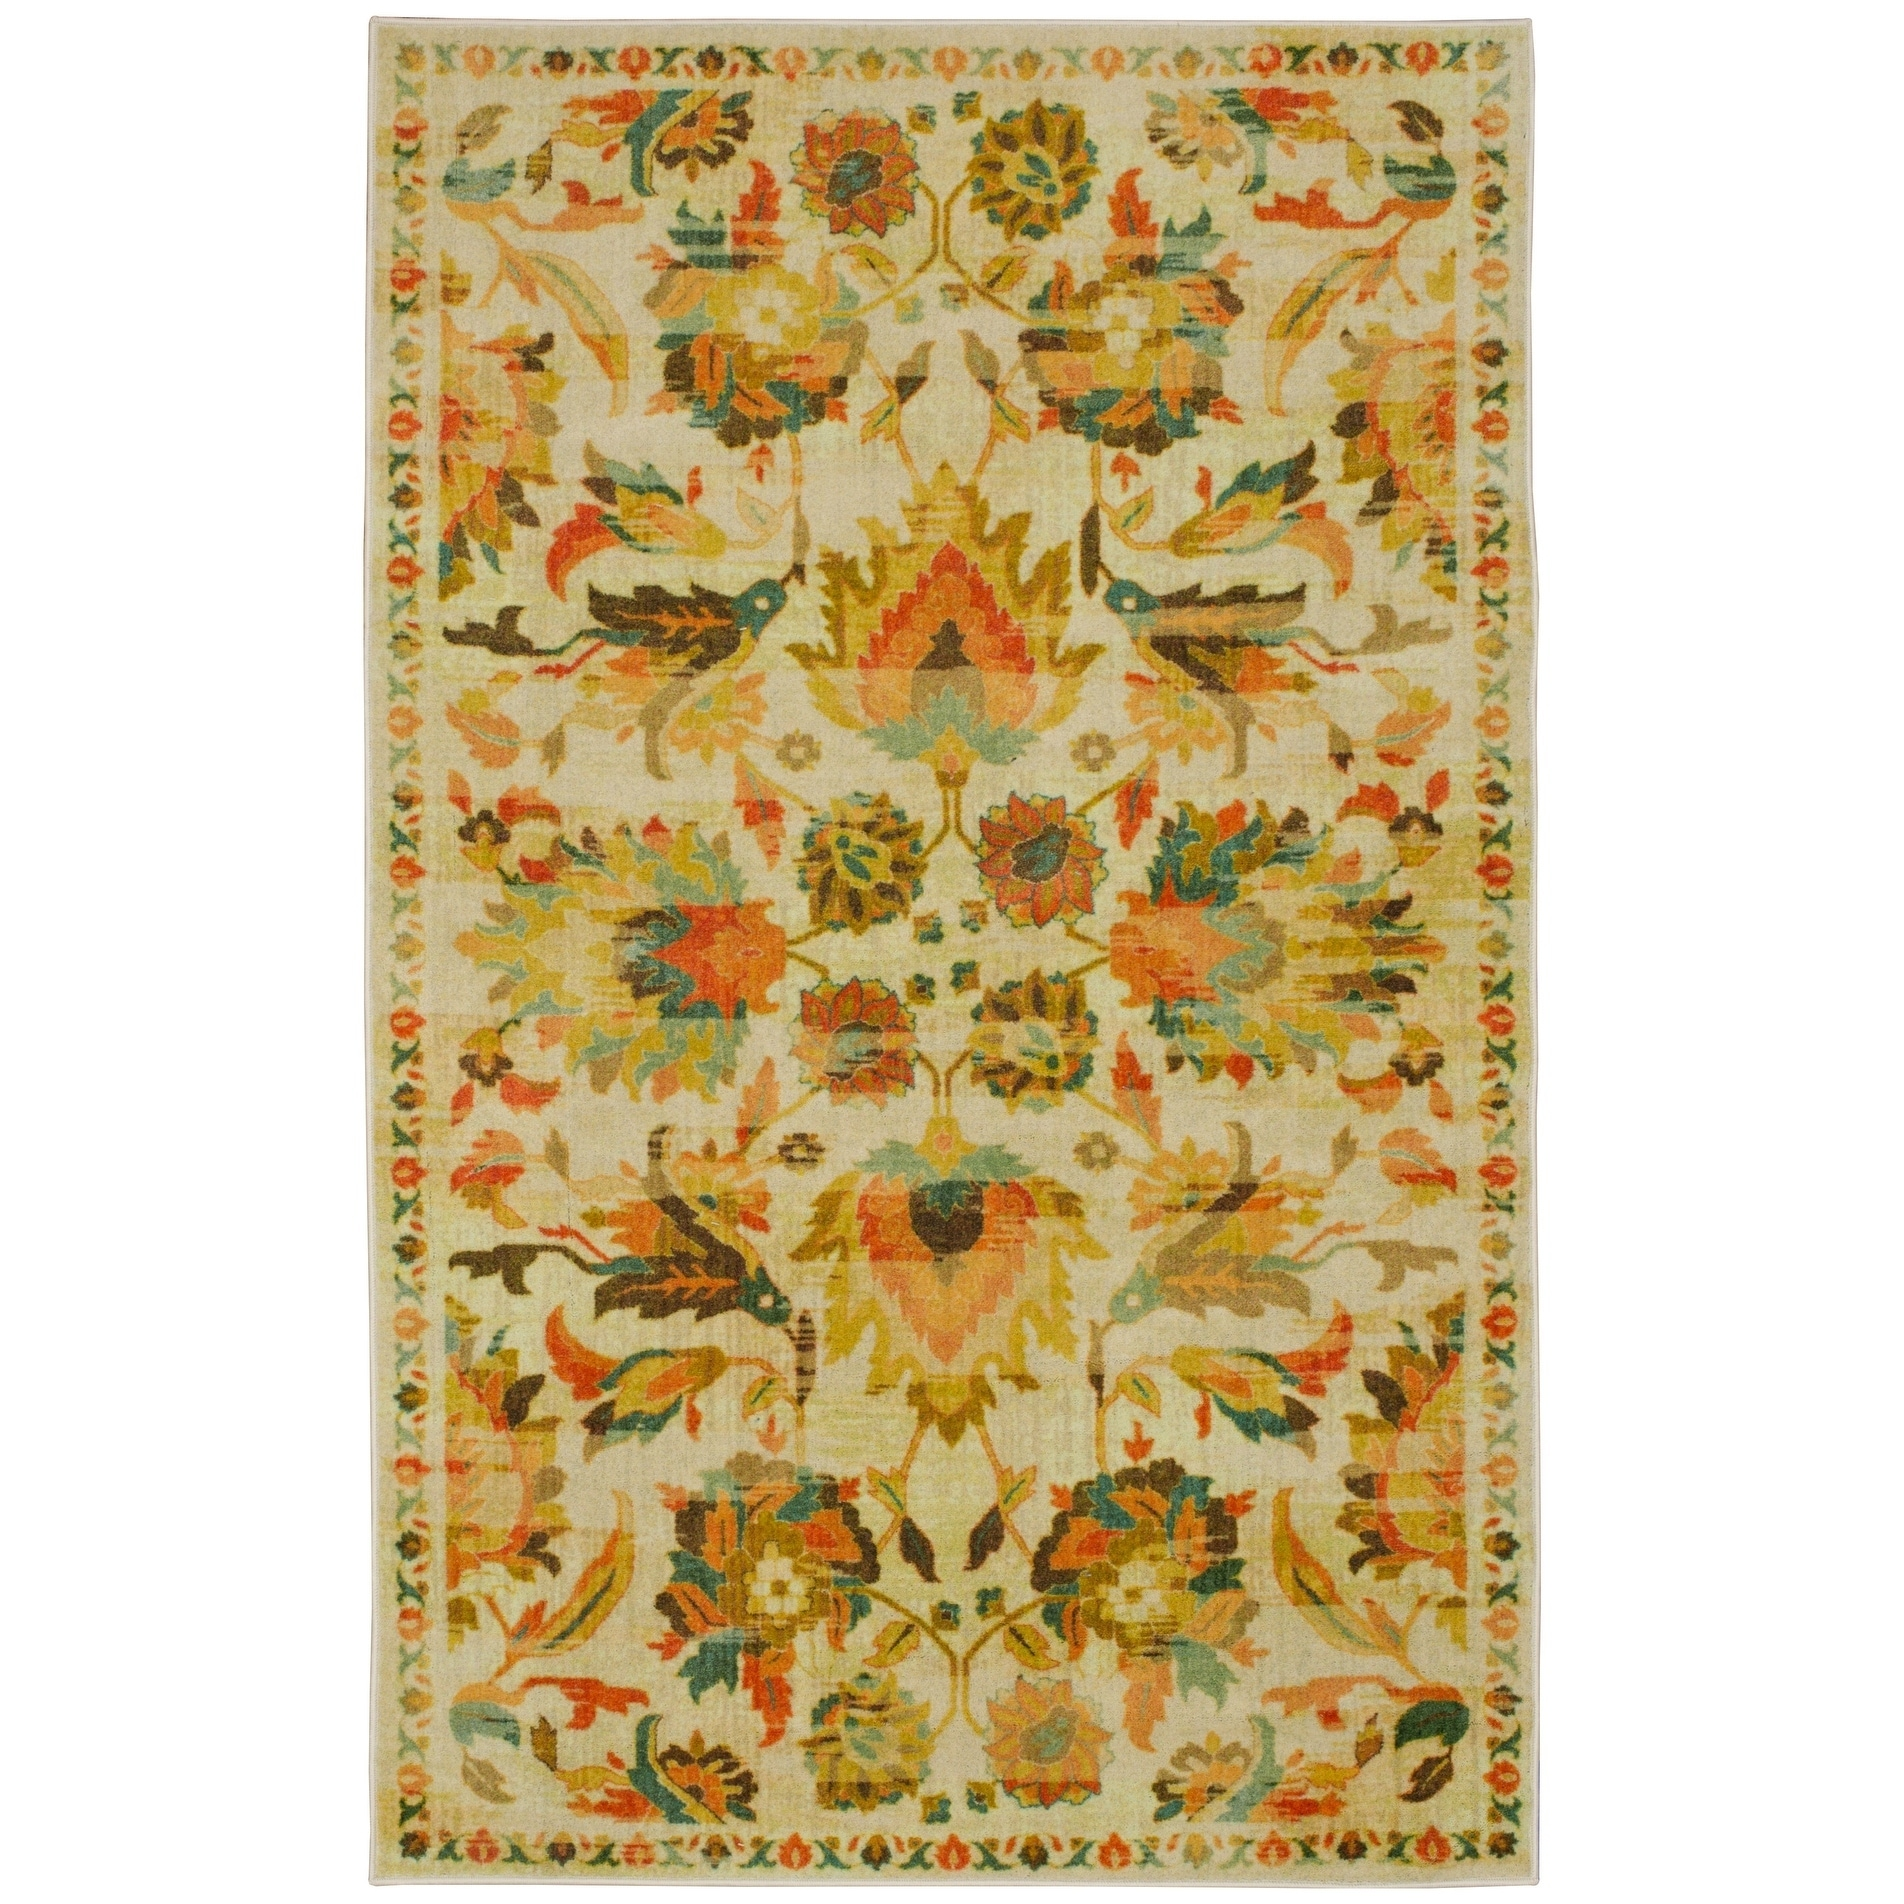 fine rugs persian rare qum burgundy intricate a blue rug gold floral area royal